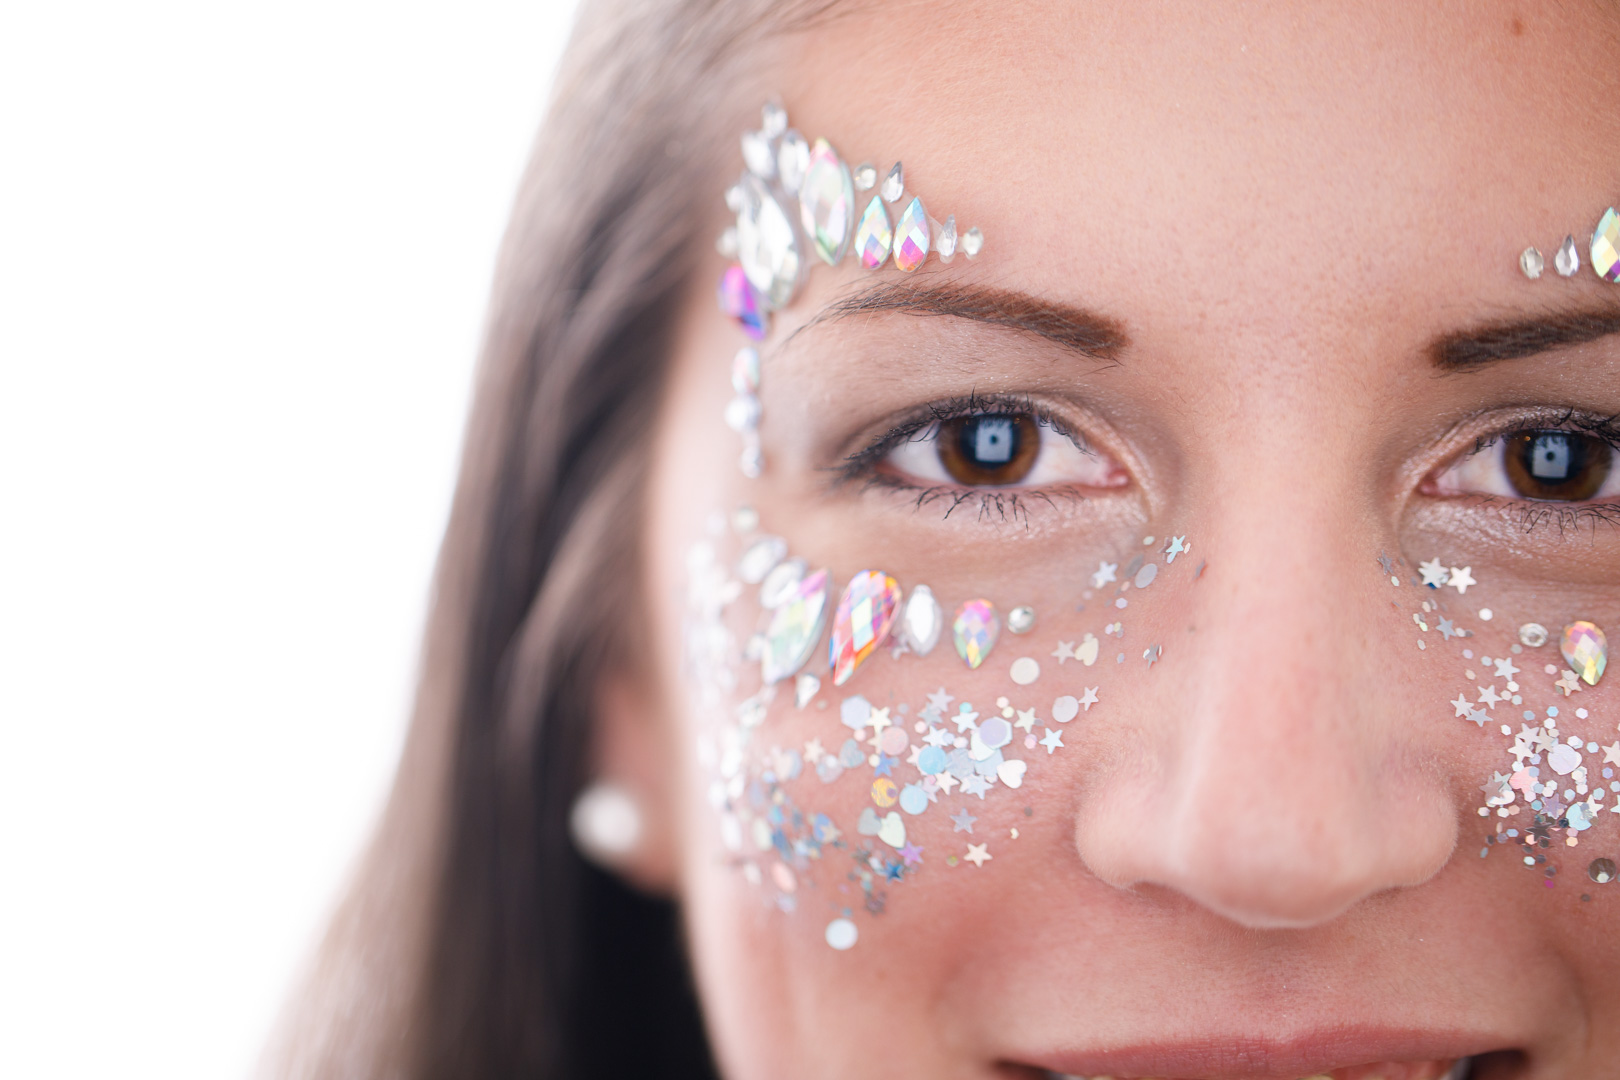 2018-01-30 - Get Glitz_d - 9011.jpget-glitzd-sparkle-glitter-day-spa-pamper-the-party-girl-world-kids-children-s-birthday-parties-face-painting-events-shopping-centre-activations-workshops-games-balloon-scultping-entertainer-entertainment-perth-canberra-melbourne-geelong-surfcoast-brisbane-gold-coast-nsw-vic-qld-wa-act-australiag